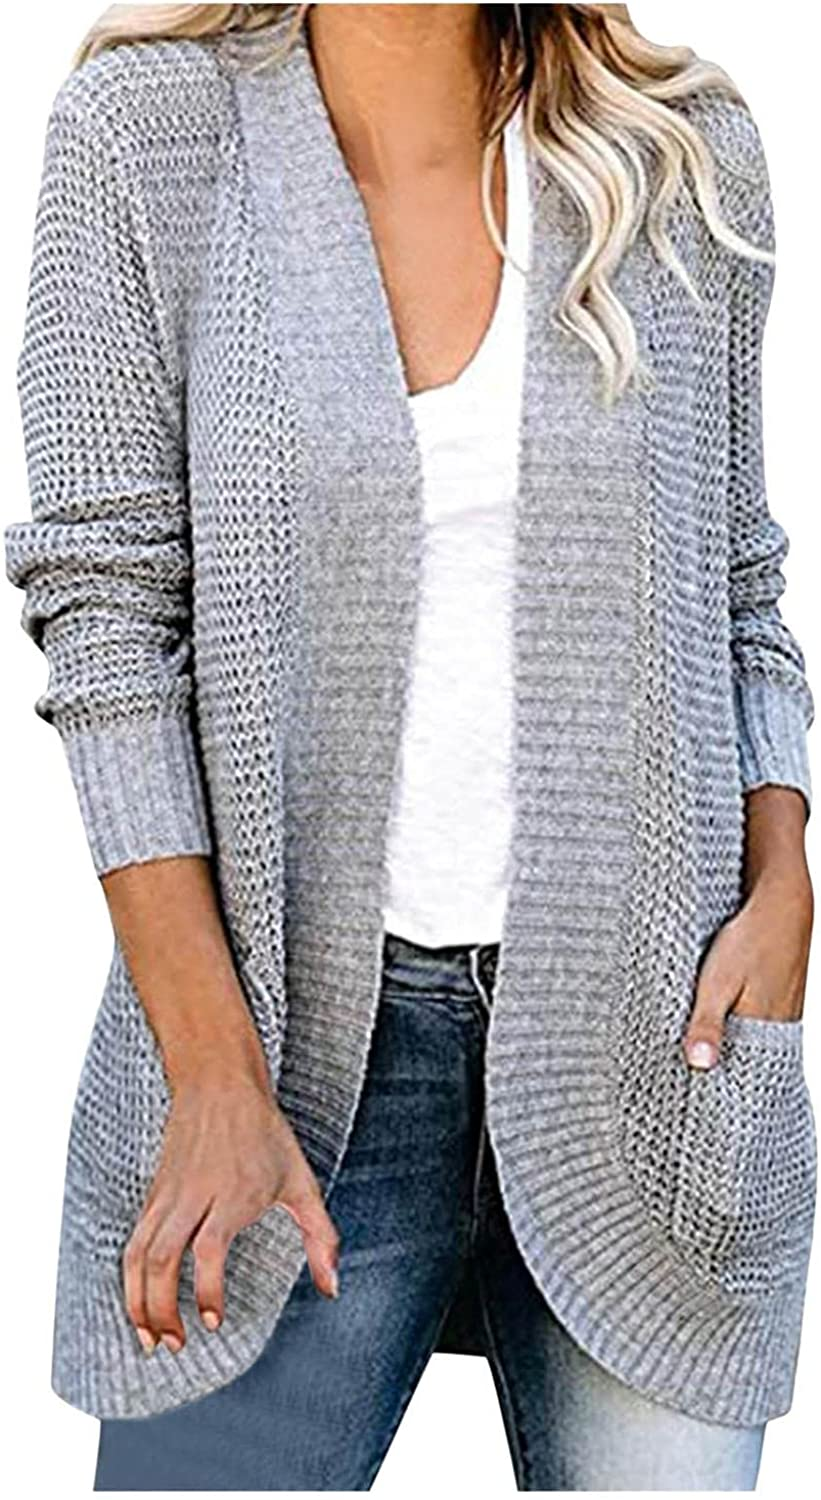 AODONG Cardigan for Women Long Sleeves Casual Knitted Sweater Open Front Cardigan Loose Coat with Pockets